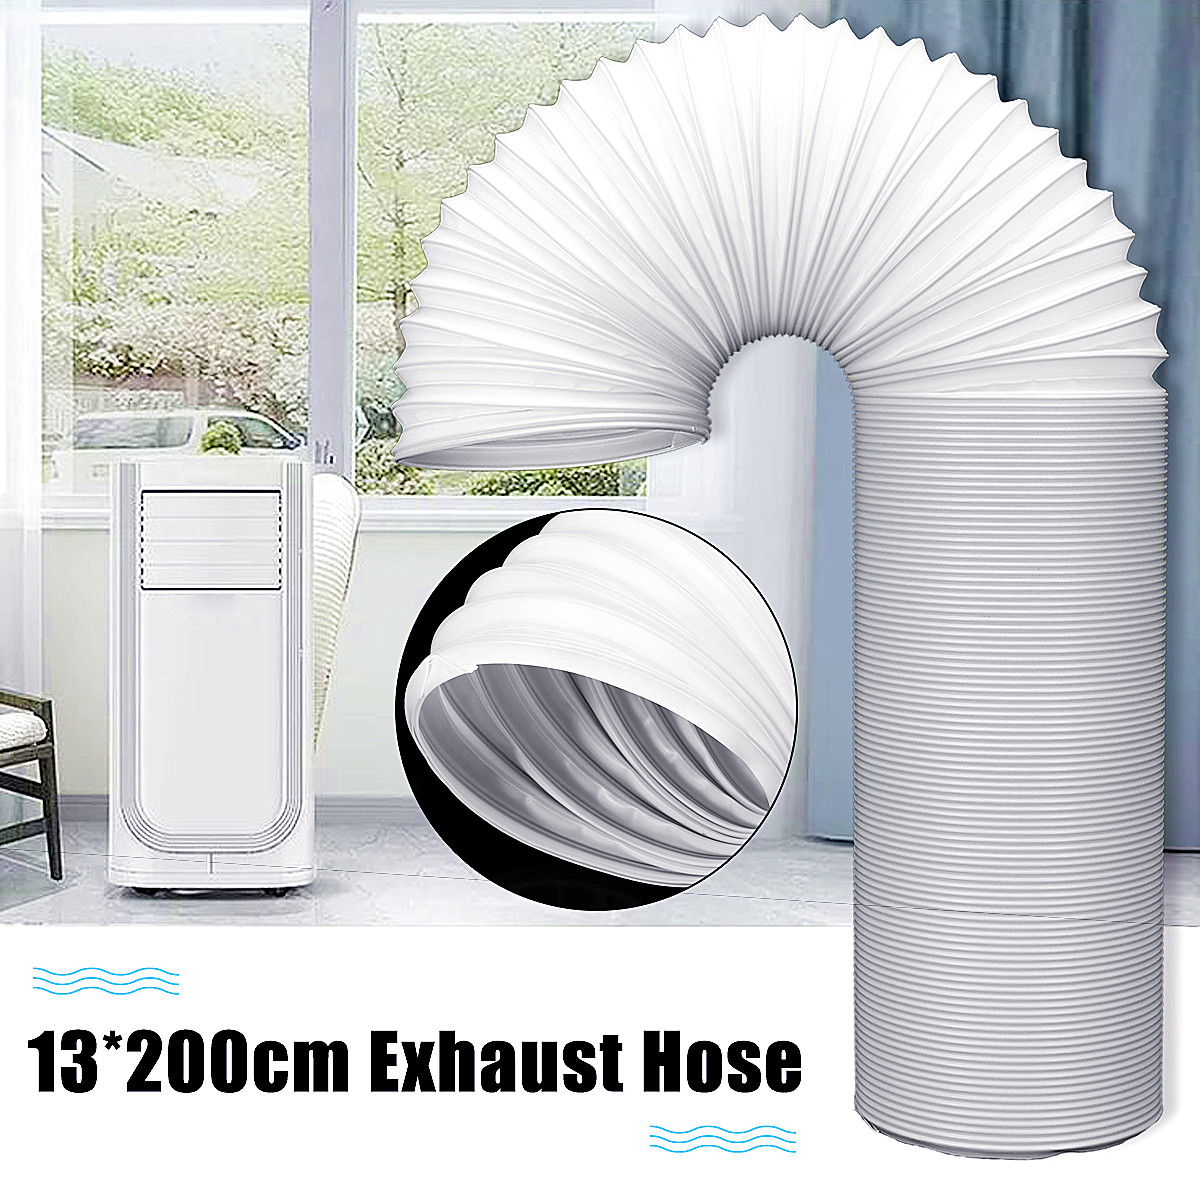 US $19 35 42% OFF|2M Universal Exhaust Hose Tube For Portable Air  Conditioners 5